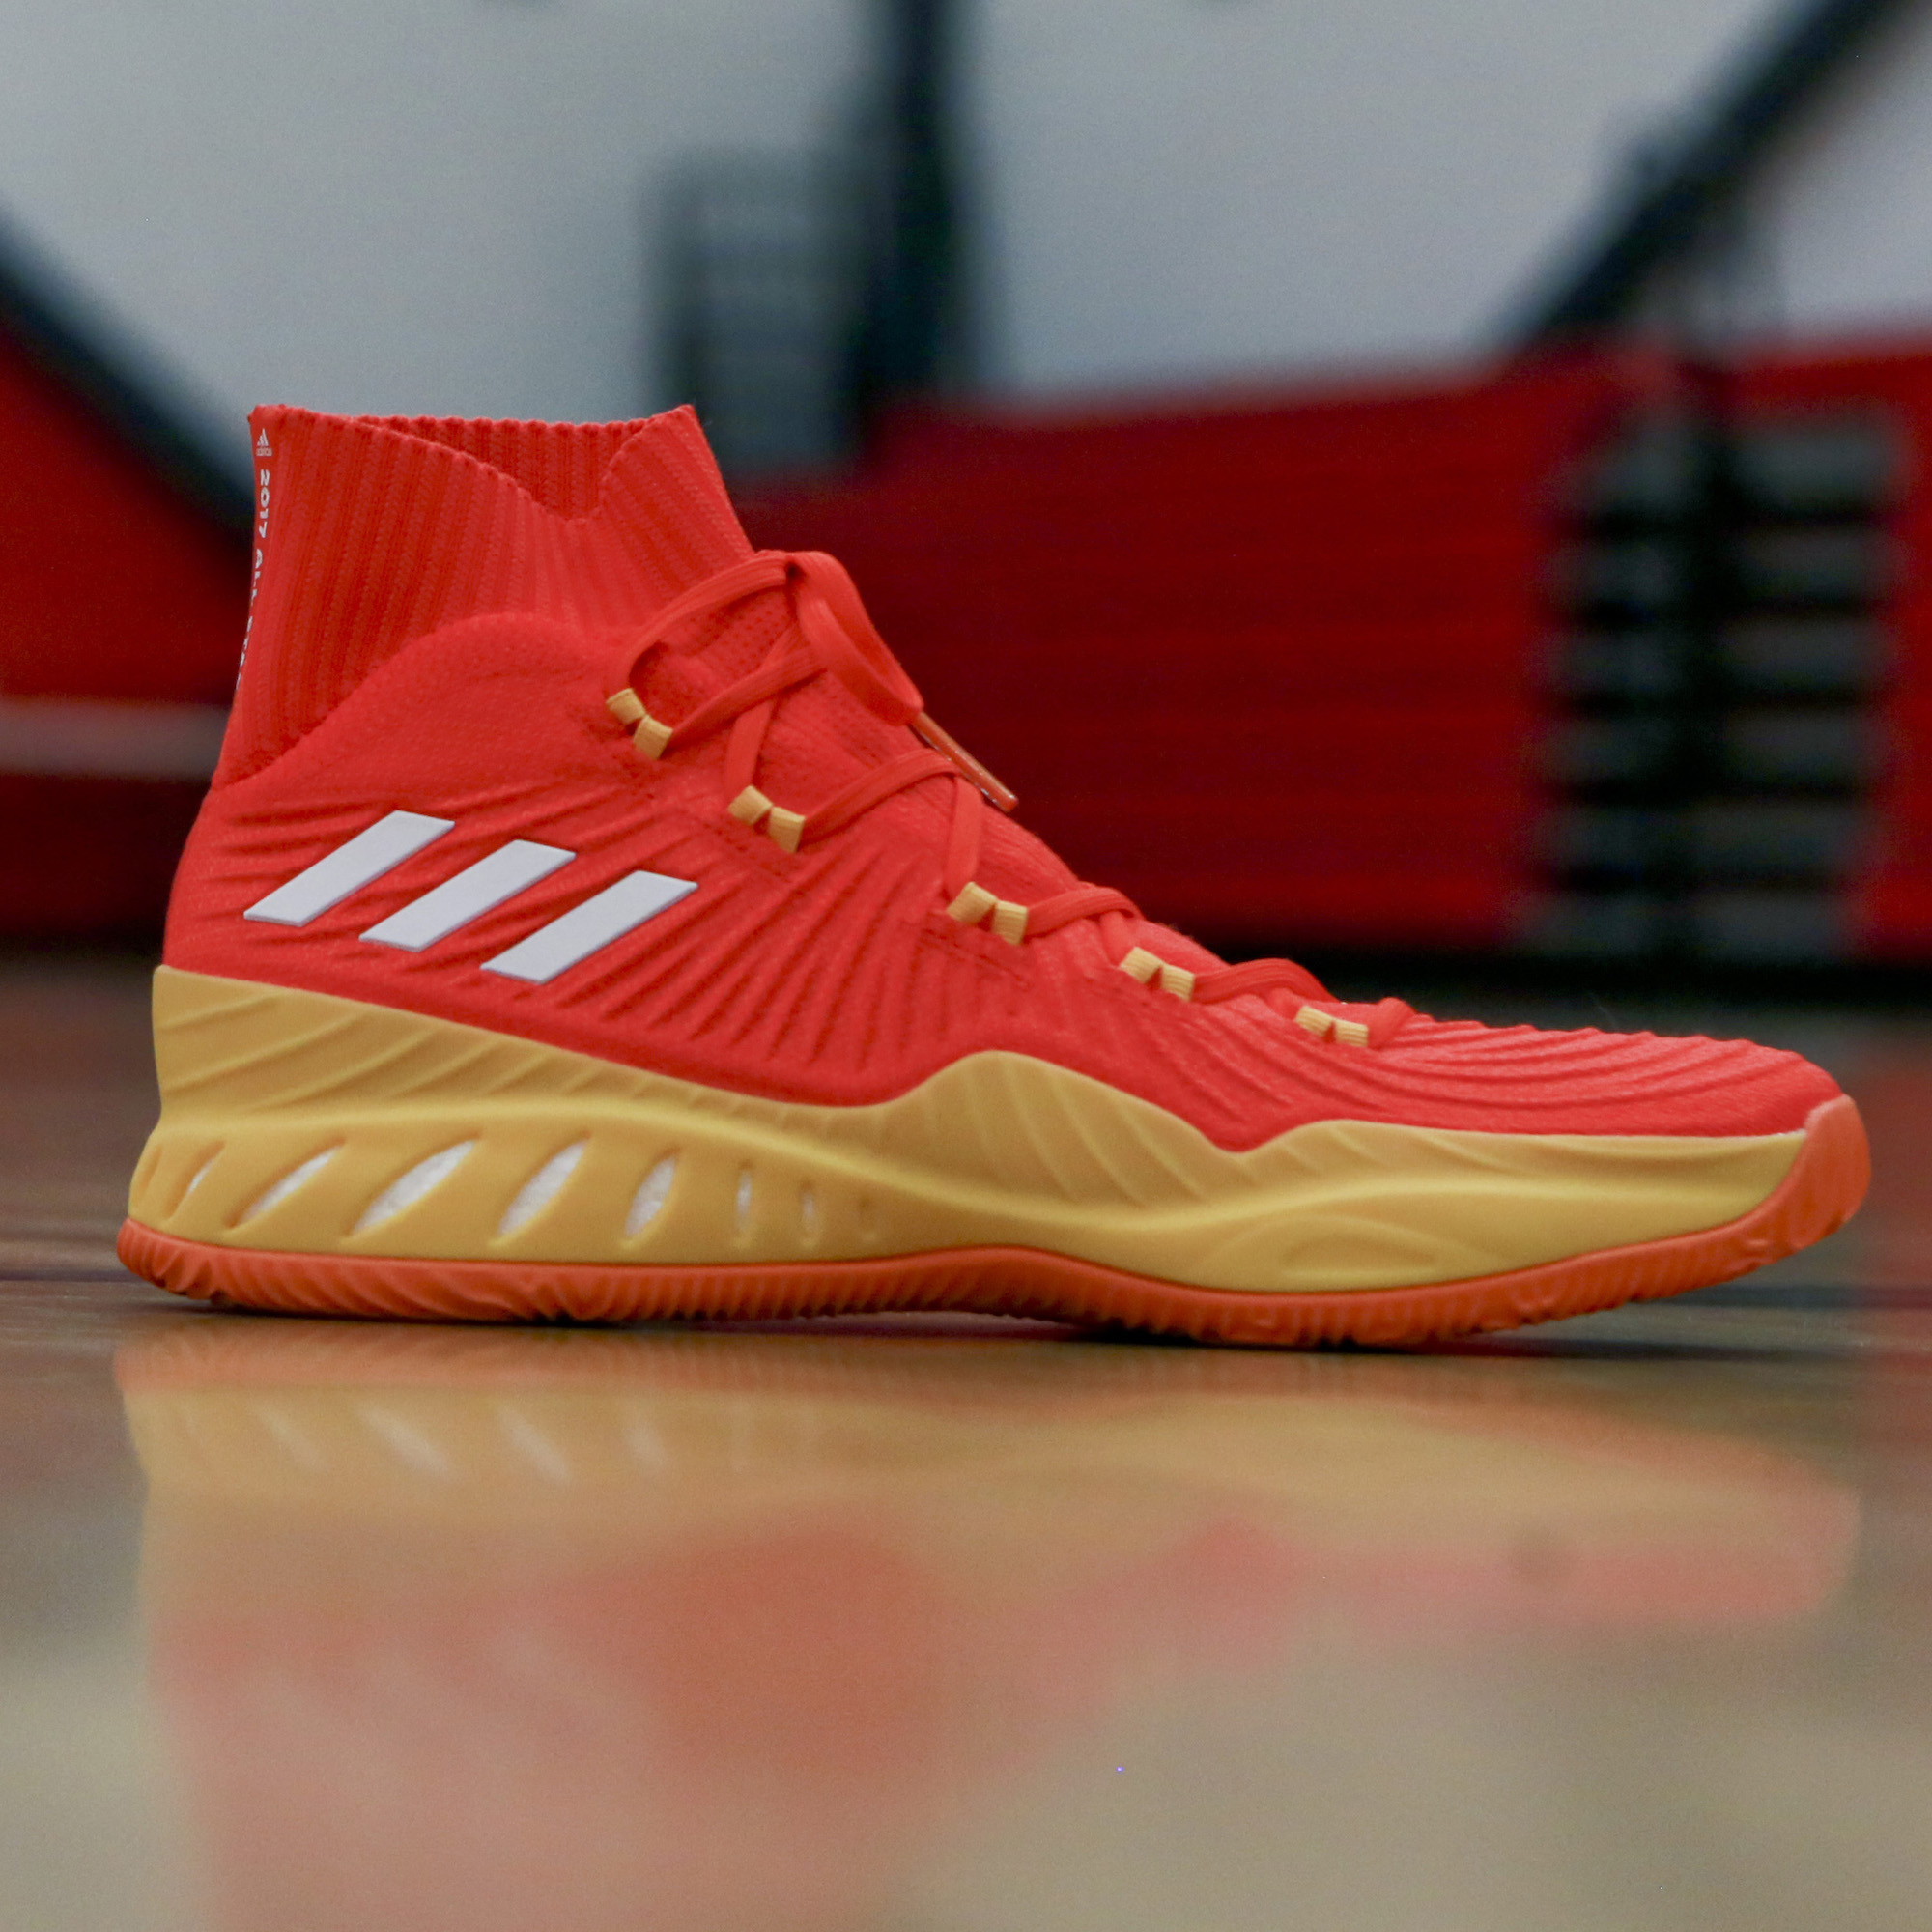 adidas Crazy Explosive 17 Candace Parker All-Star PE 4